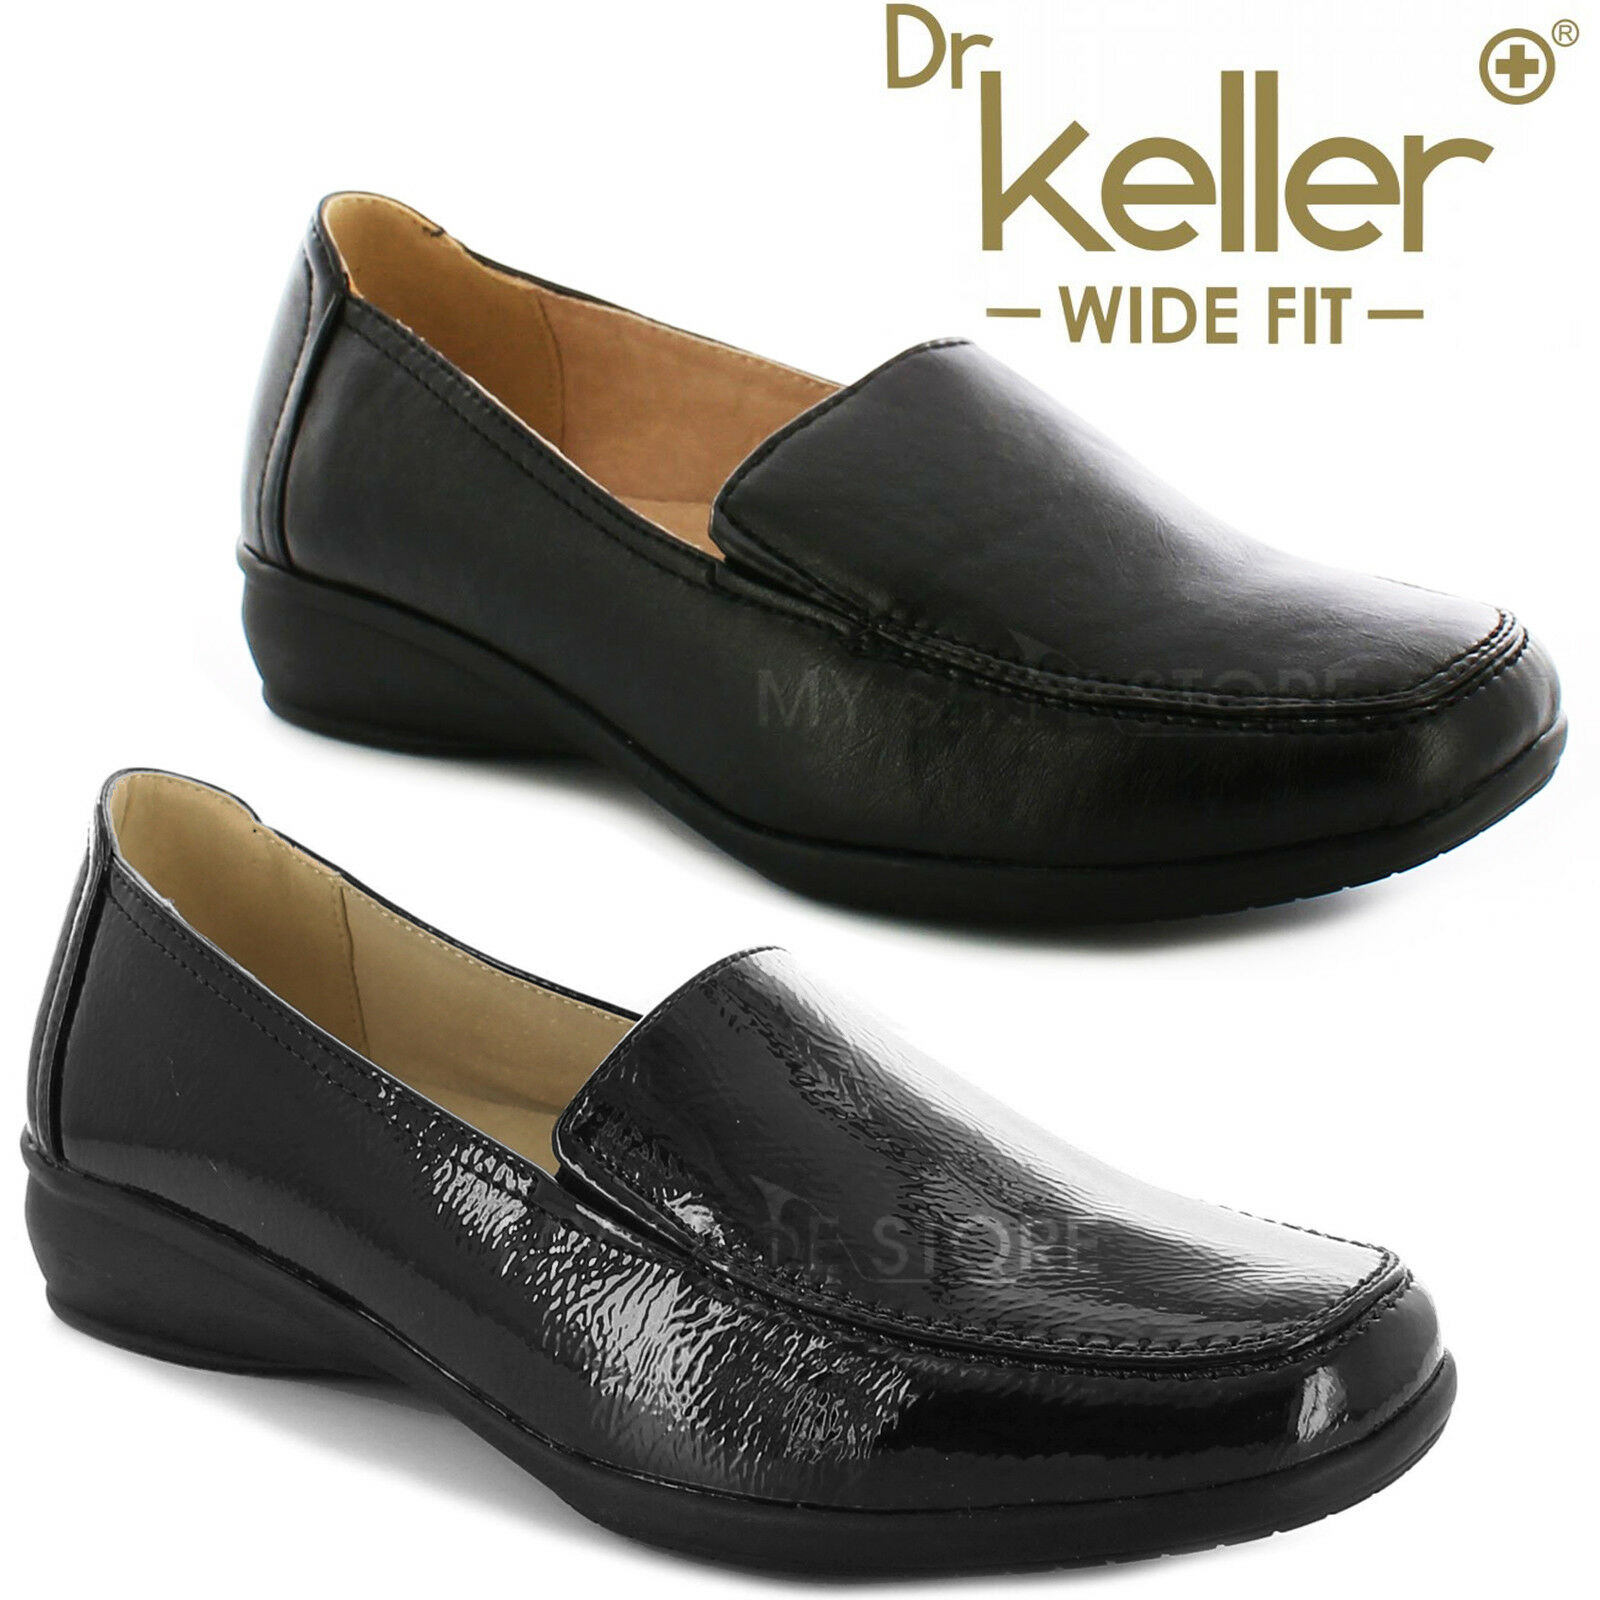 DR KELLER WOMENS WIDE FIT SHOES LADIES MOCCASIN LOAFER FLAT WEDGE COMFORT CASUAL LOAFER MOCCASIN b4ab22